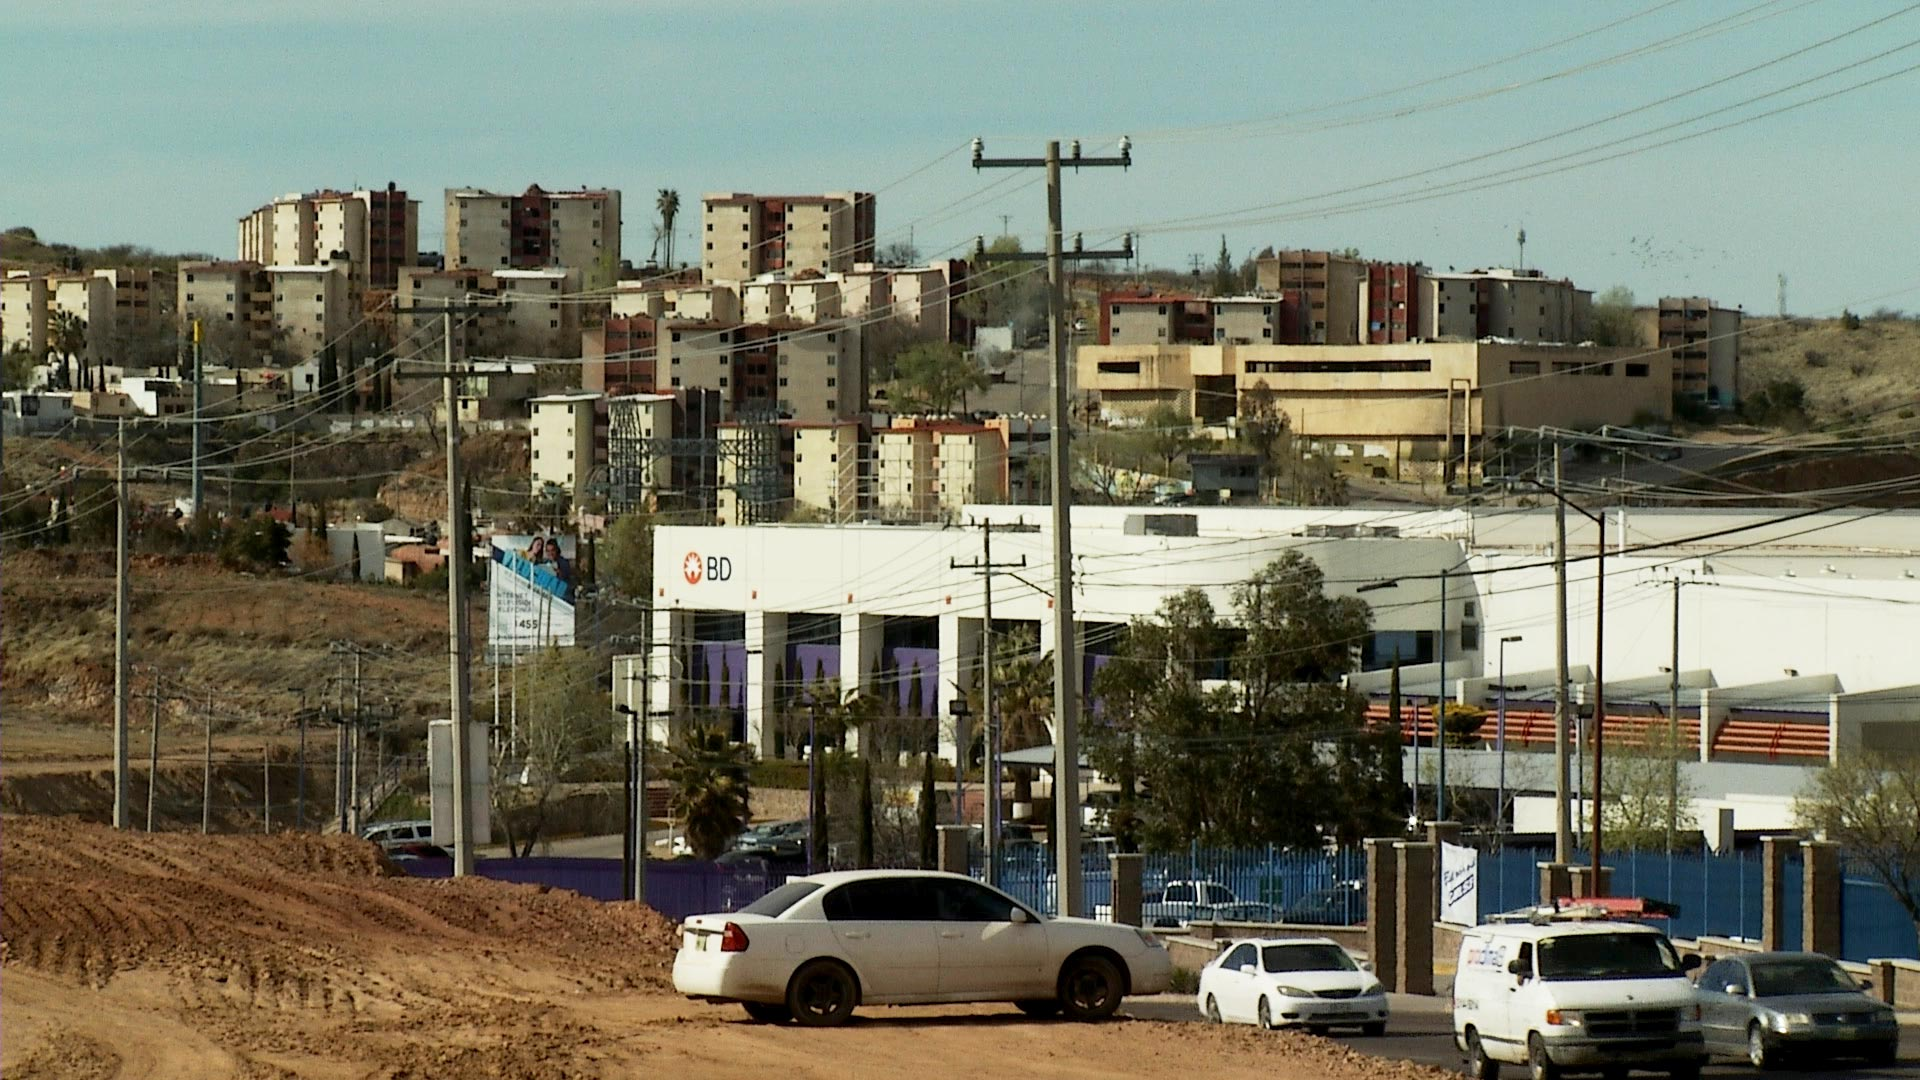 Maquilas line the road in Nogales, Sonora a few miles south of the Mariposa Port of Entry, March 2019.